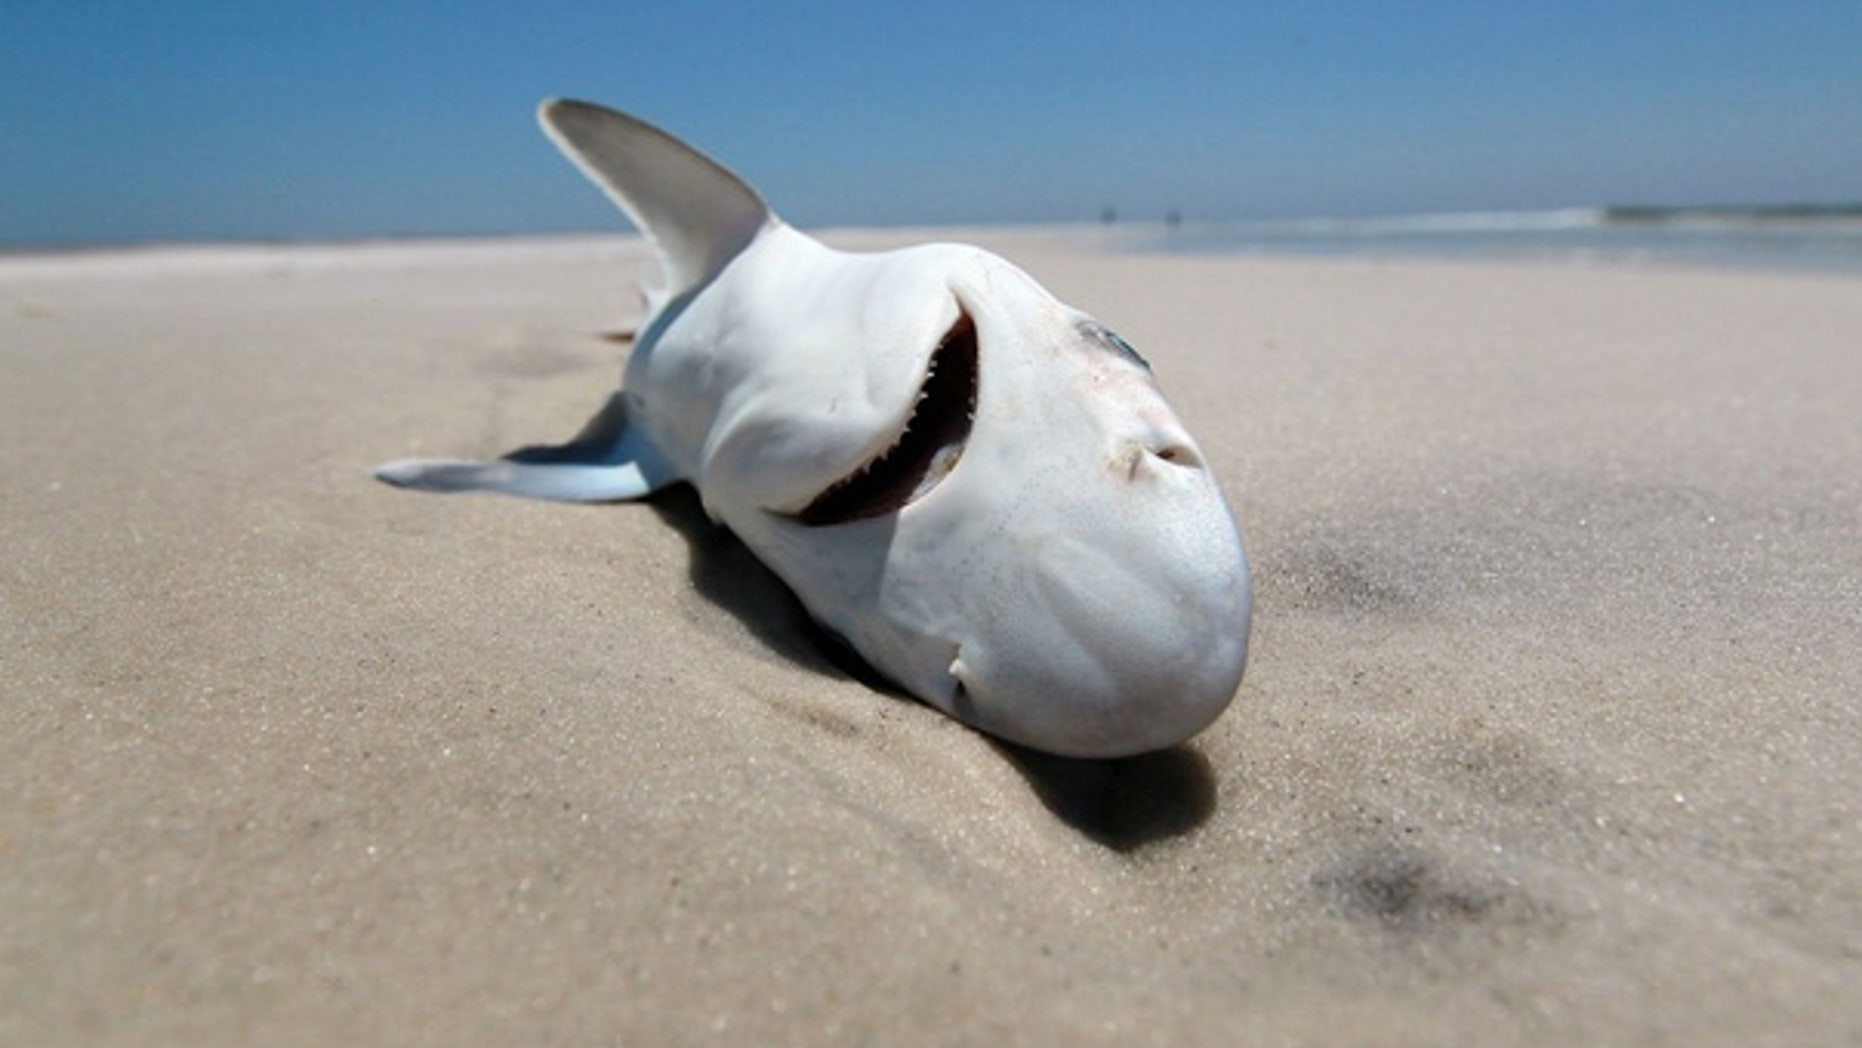 May 4: A dead shark is seen laying in the surf as concern continues that the massive oil spill in the Gulf of Mexico may harm animals in its path.